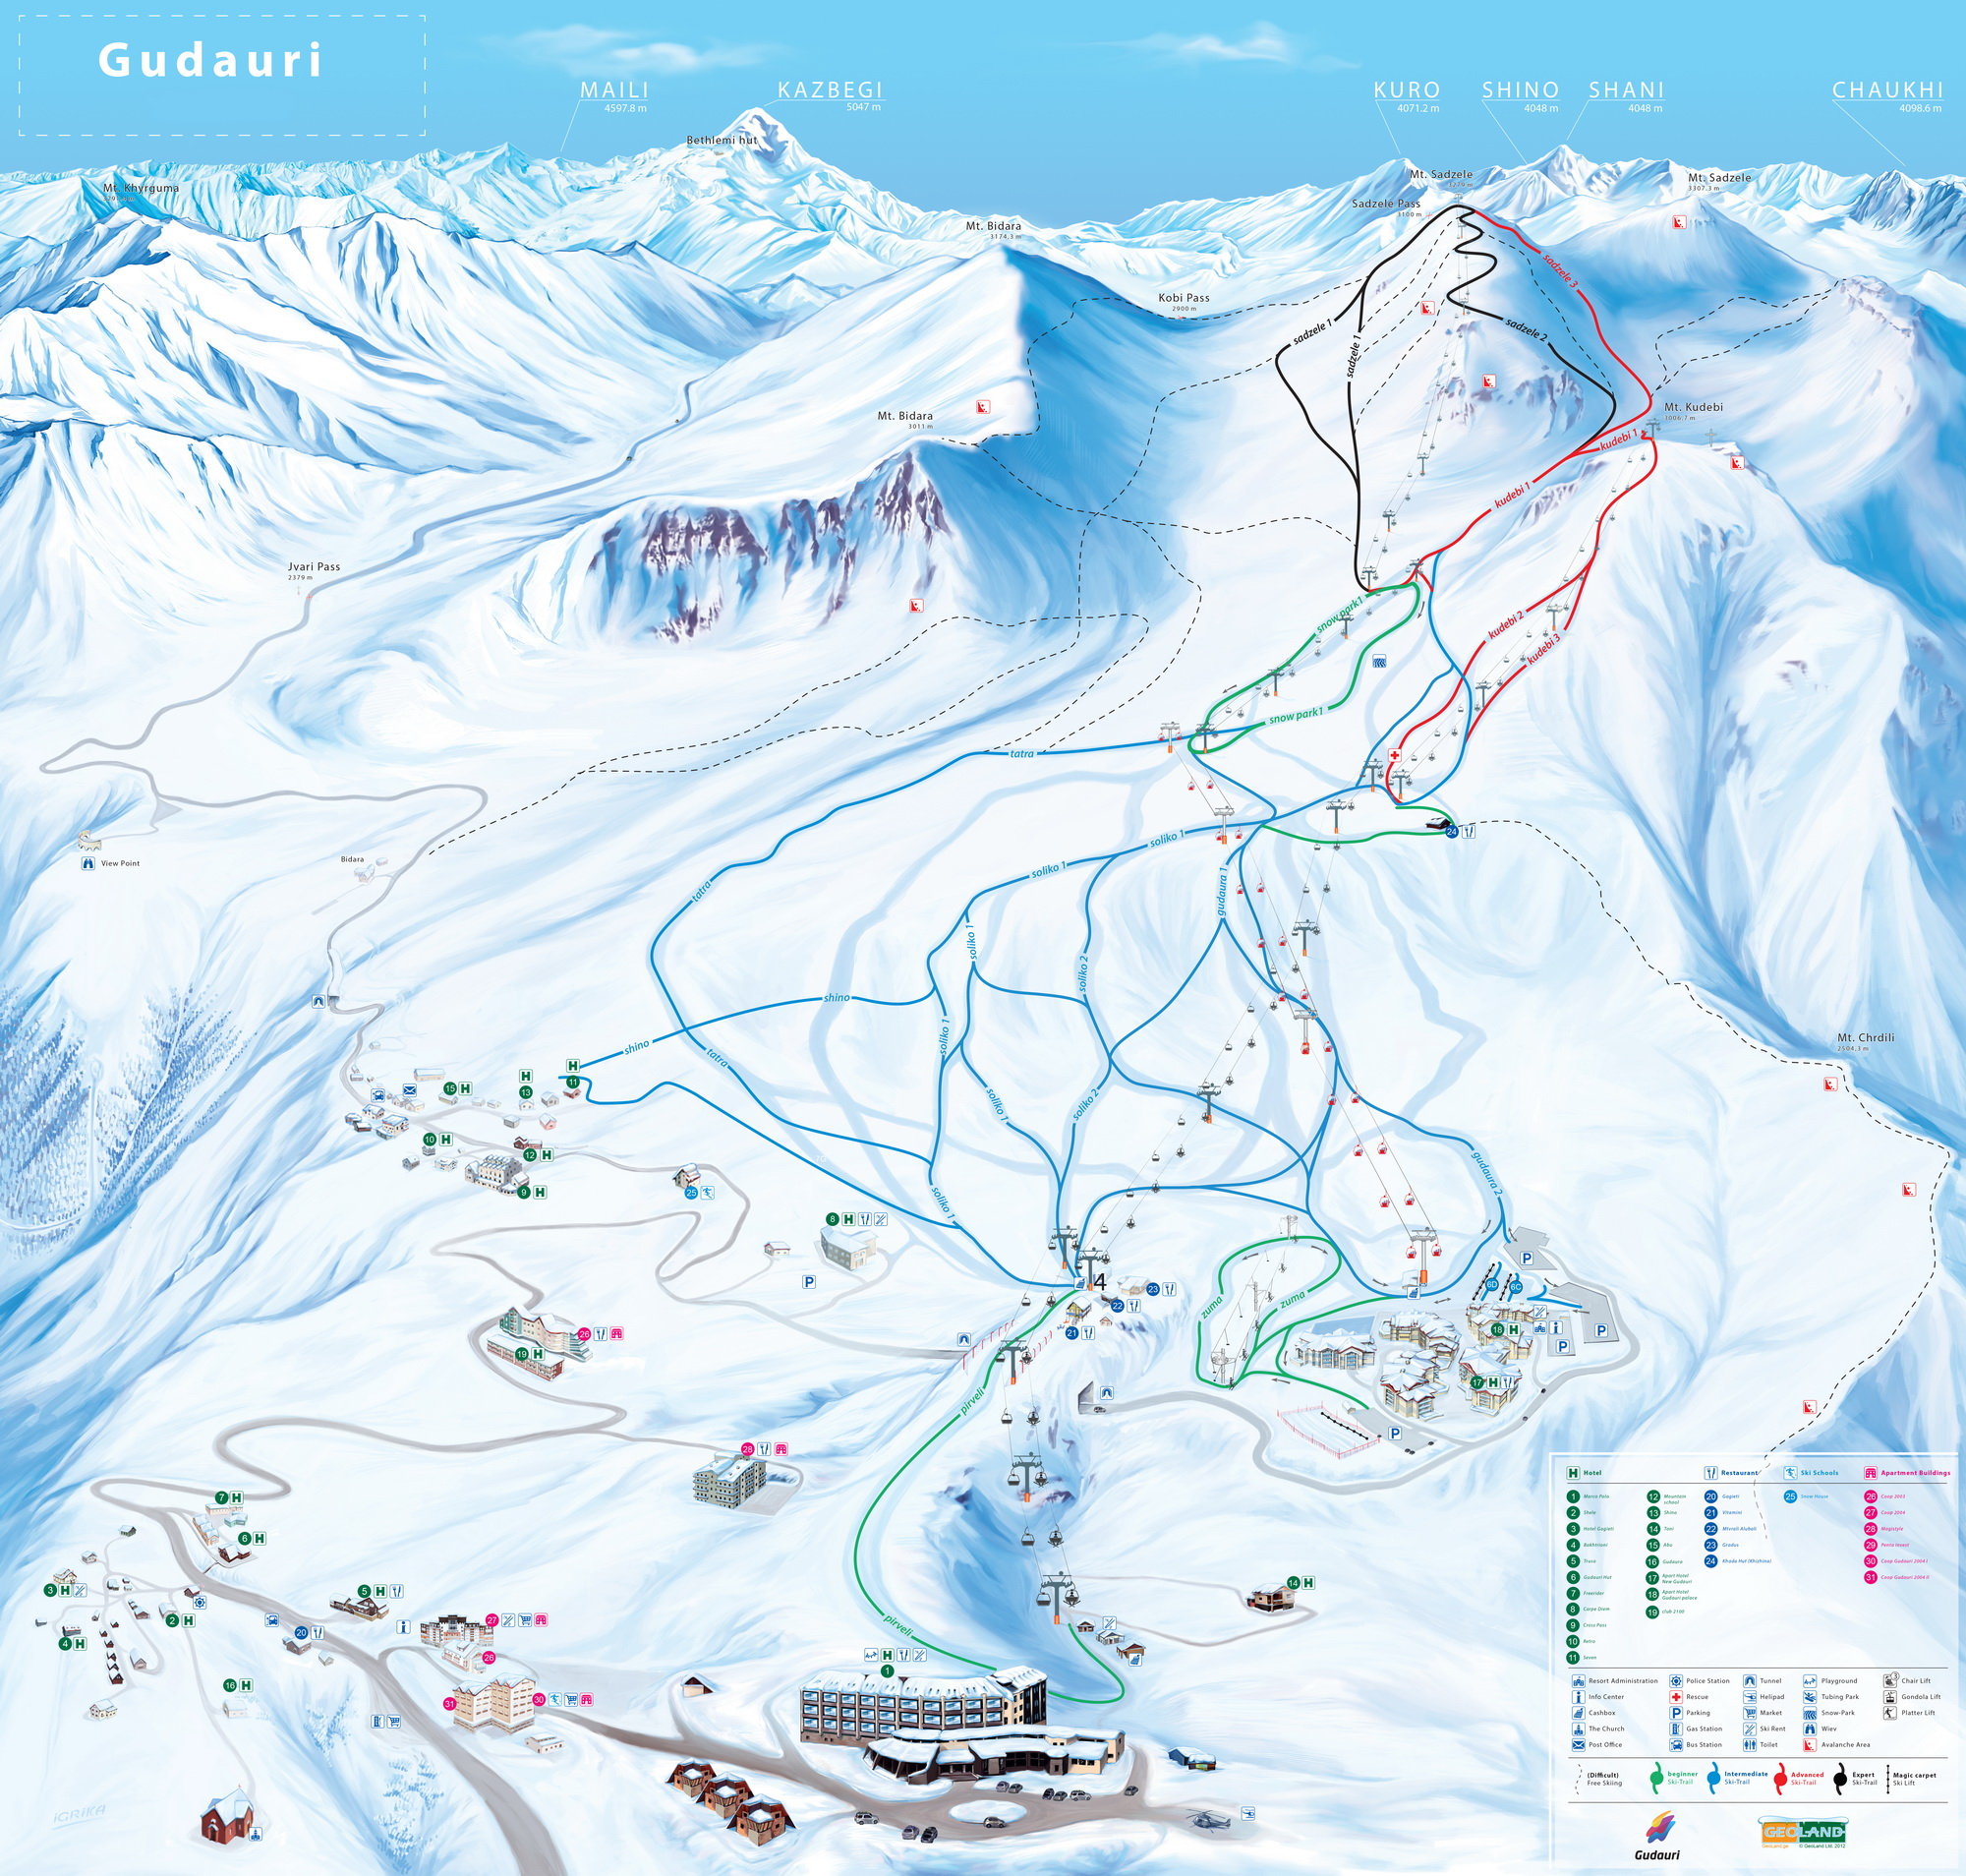 Gudauri Piste and ski lifts map of Gudauri